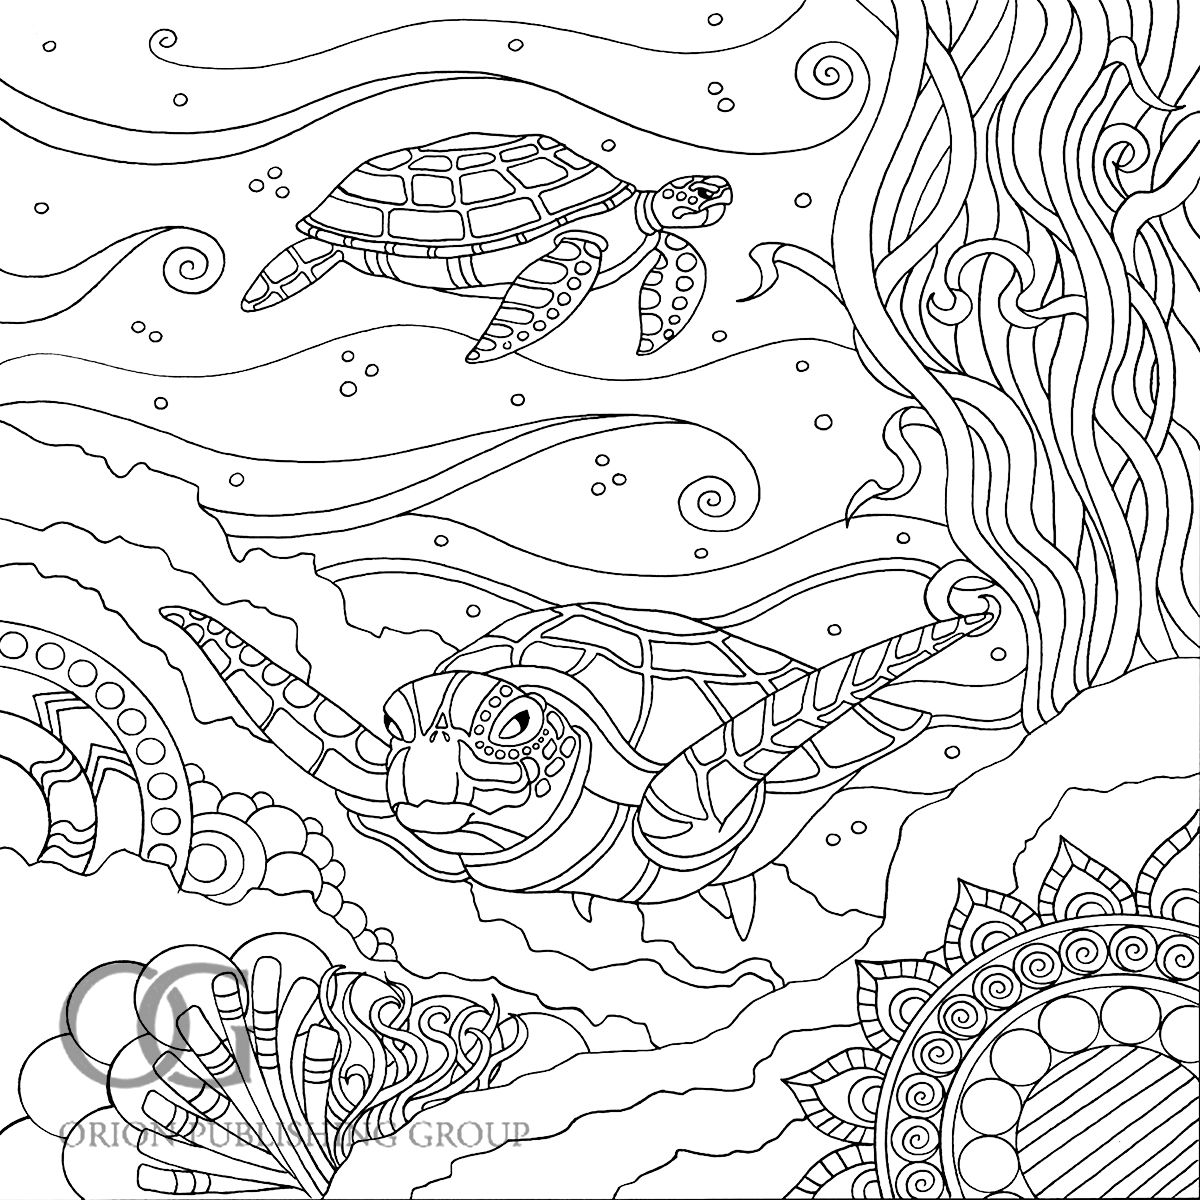 Colouring sheets underwater - Find This Pin And More On Icolor Underwater